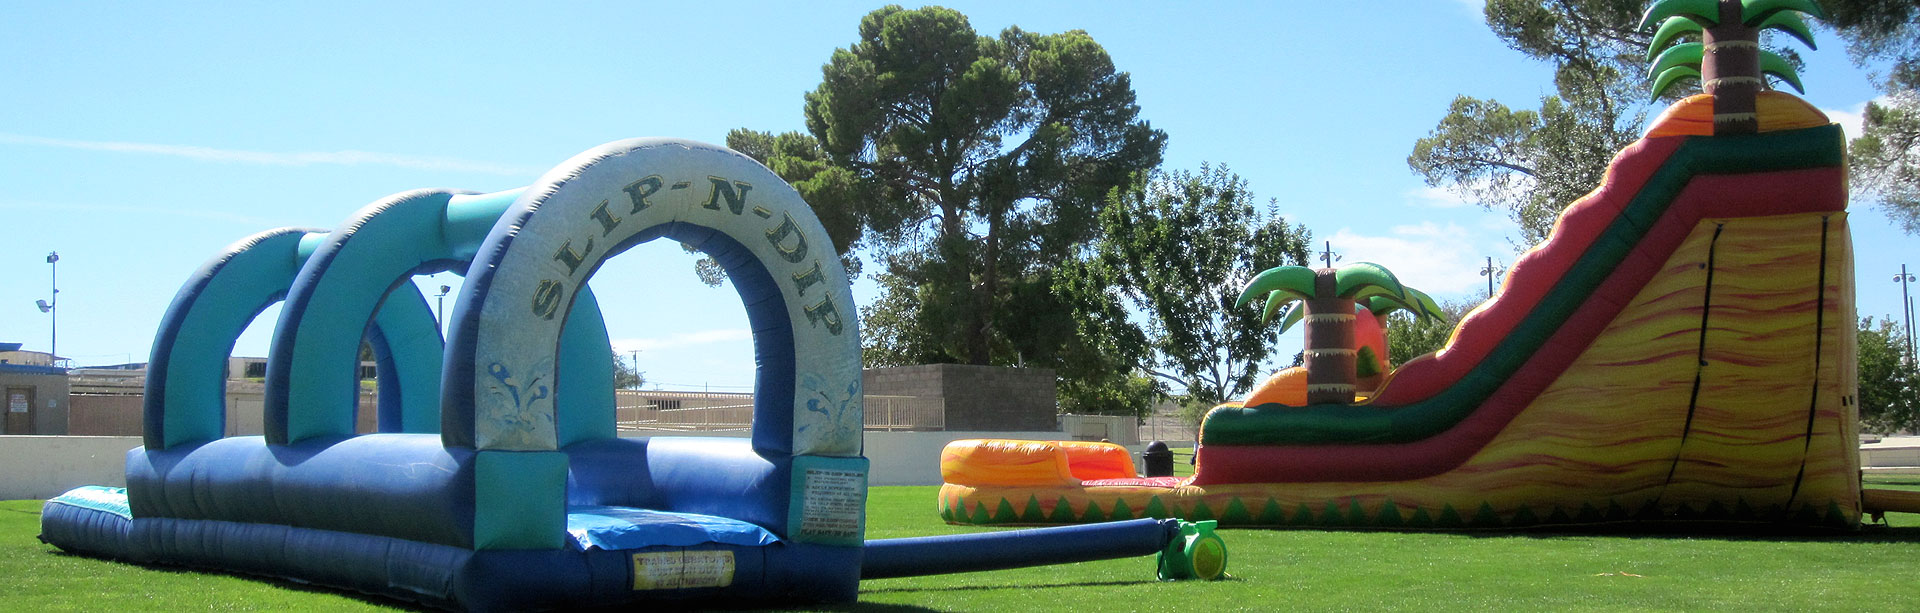 newberry springs guys Location outdoor fountains guys in newberry springs, ca is located in a convenient place where you can access we are your outdoor contractors and designers and when you work with us you are guaranteed of exemplary service.